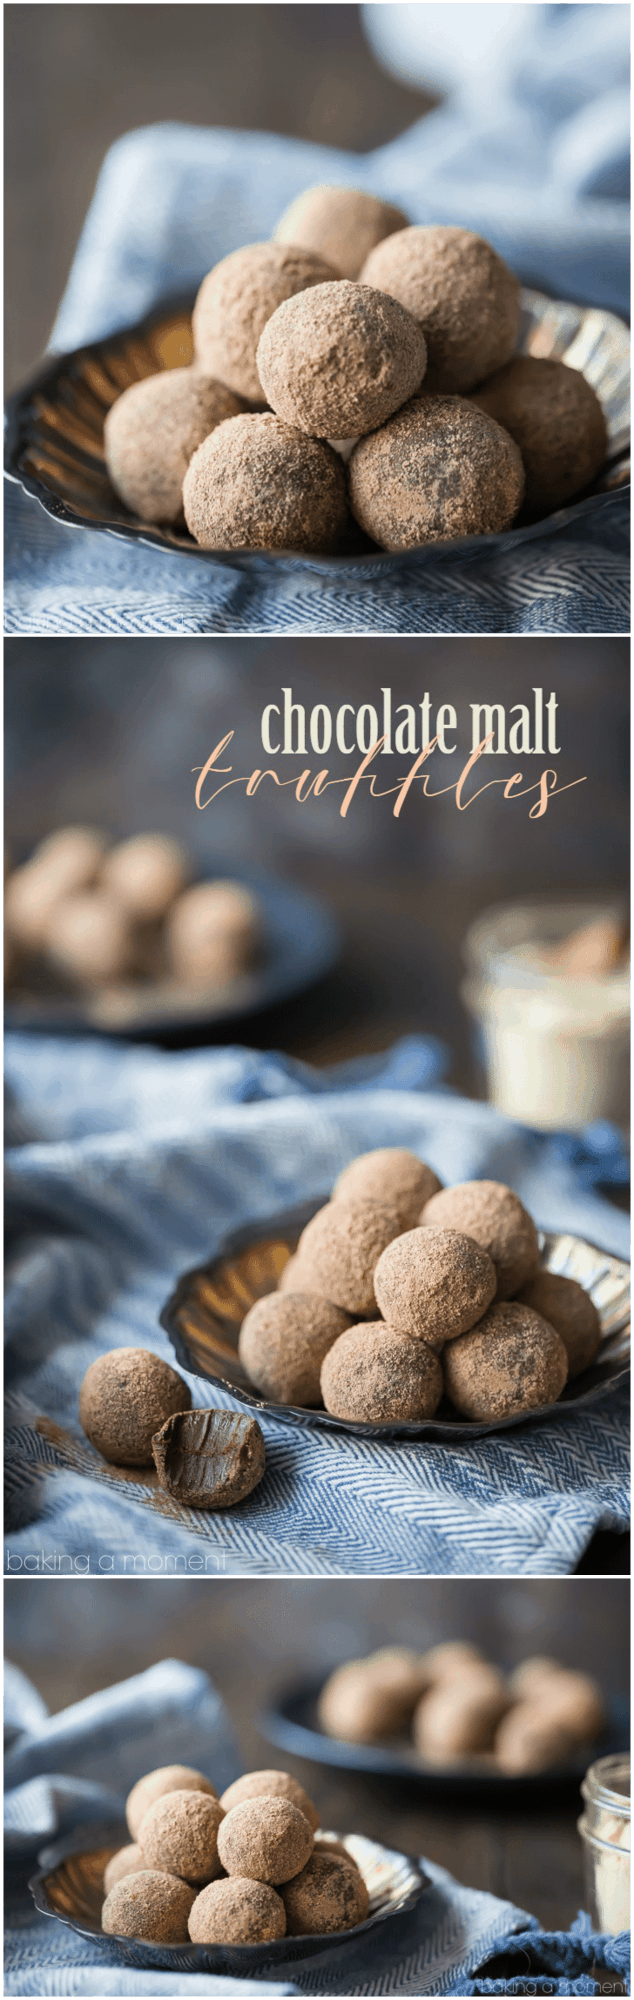 These chocolate malt truffles were so easy to make! Just a few simple ingredients and the chocolate malt flavor was so rich and smooth. I'll be giving these as gifts this Christmas! #savorysimplecookbook food desserts chocolate